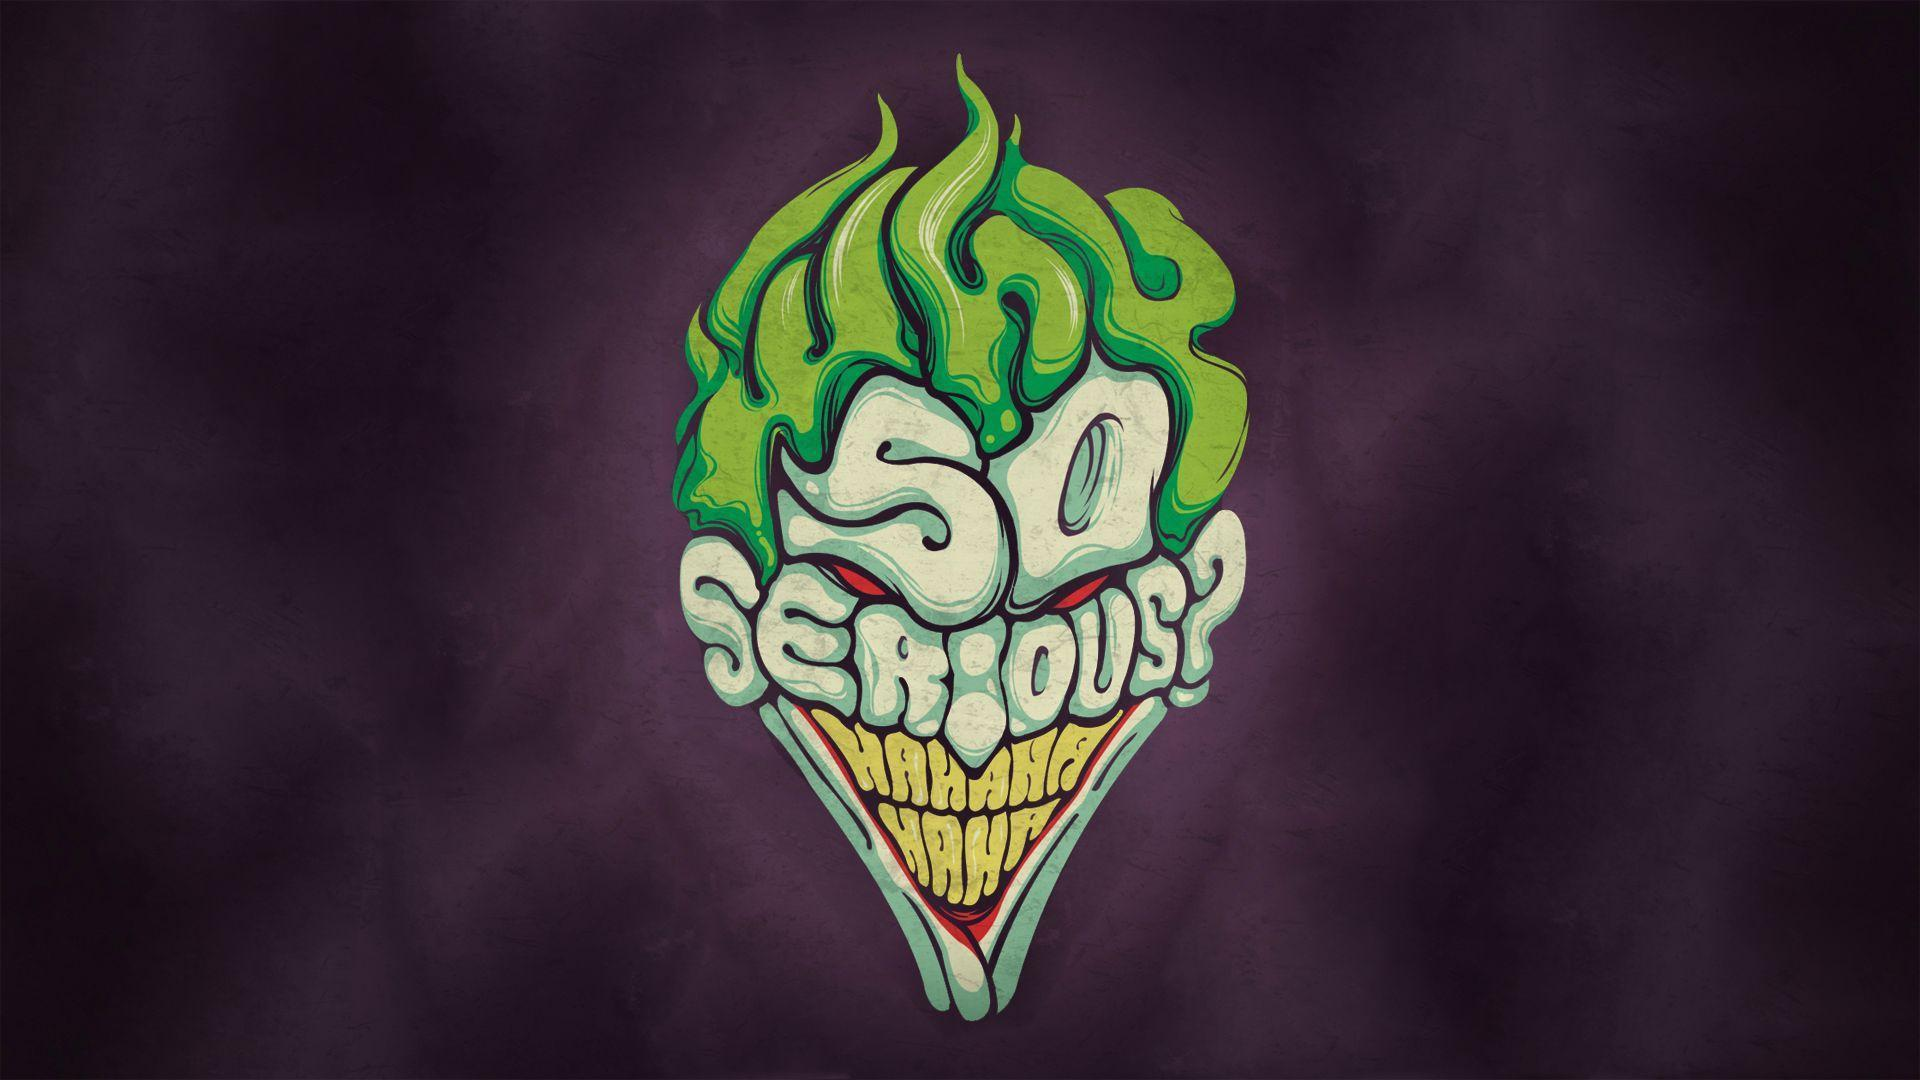 HD Joker Why So Serious Wallpapers